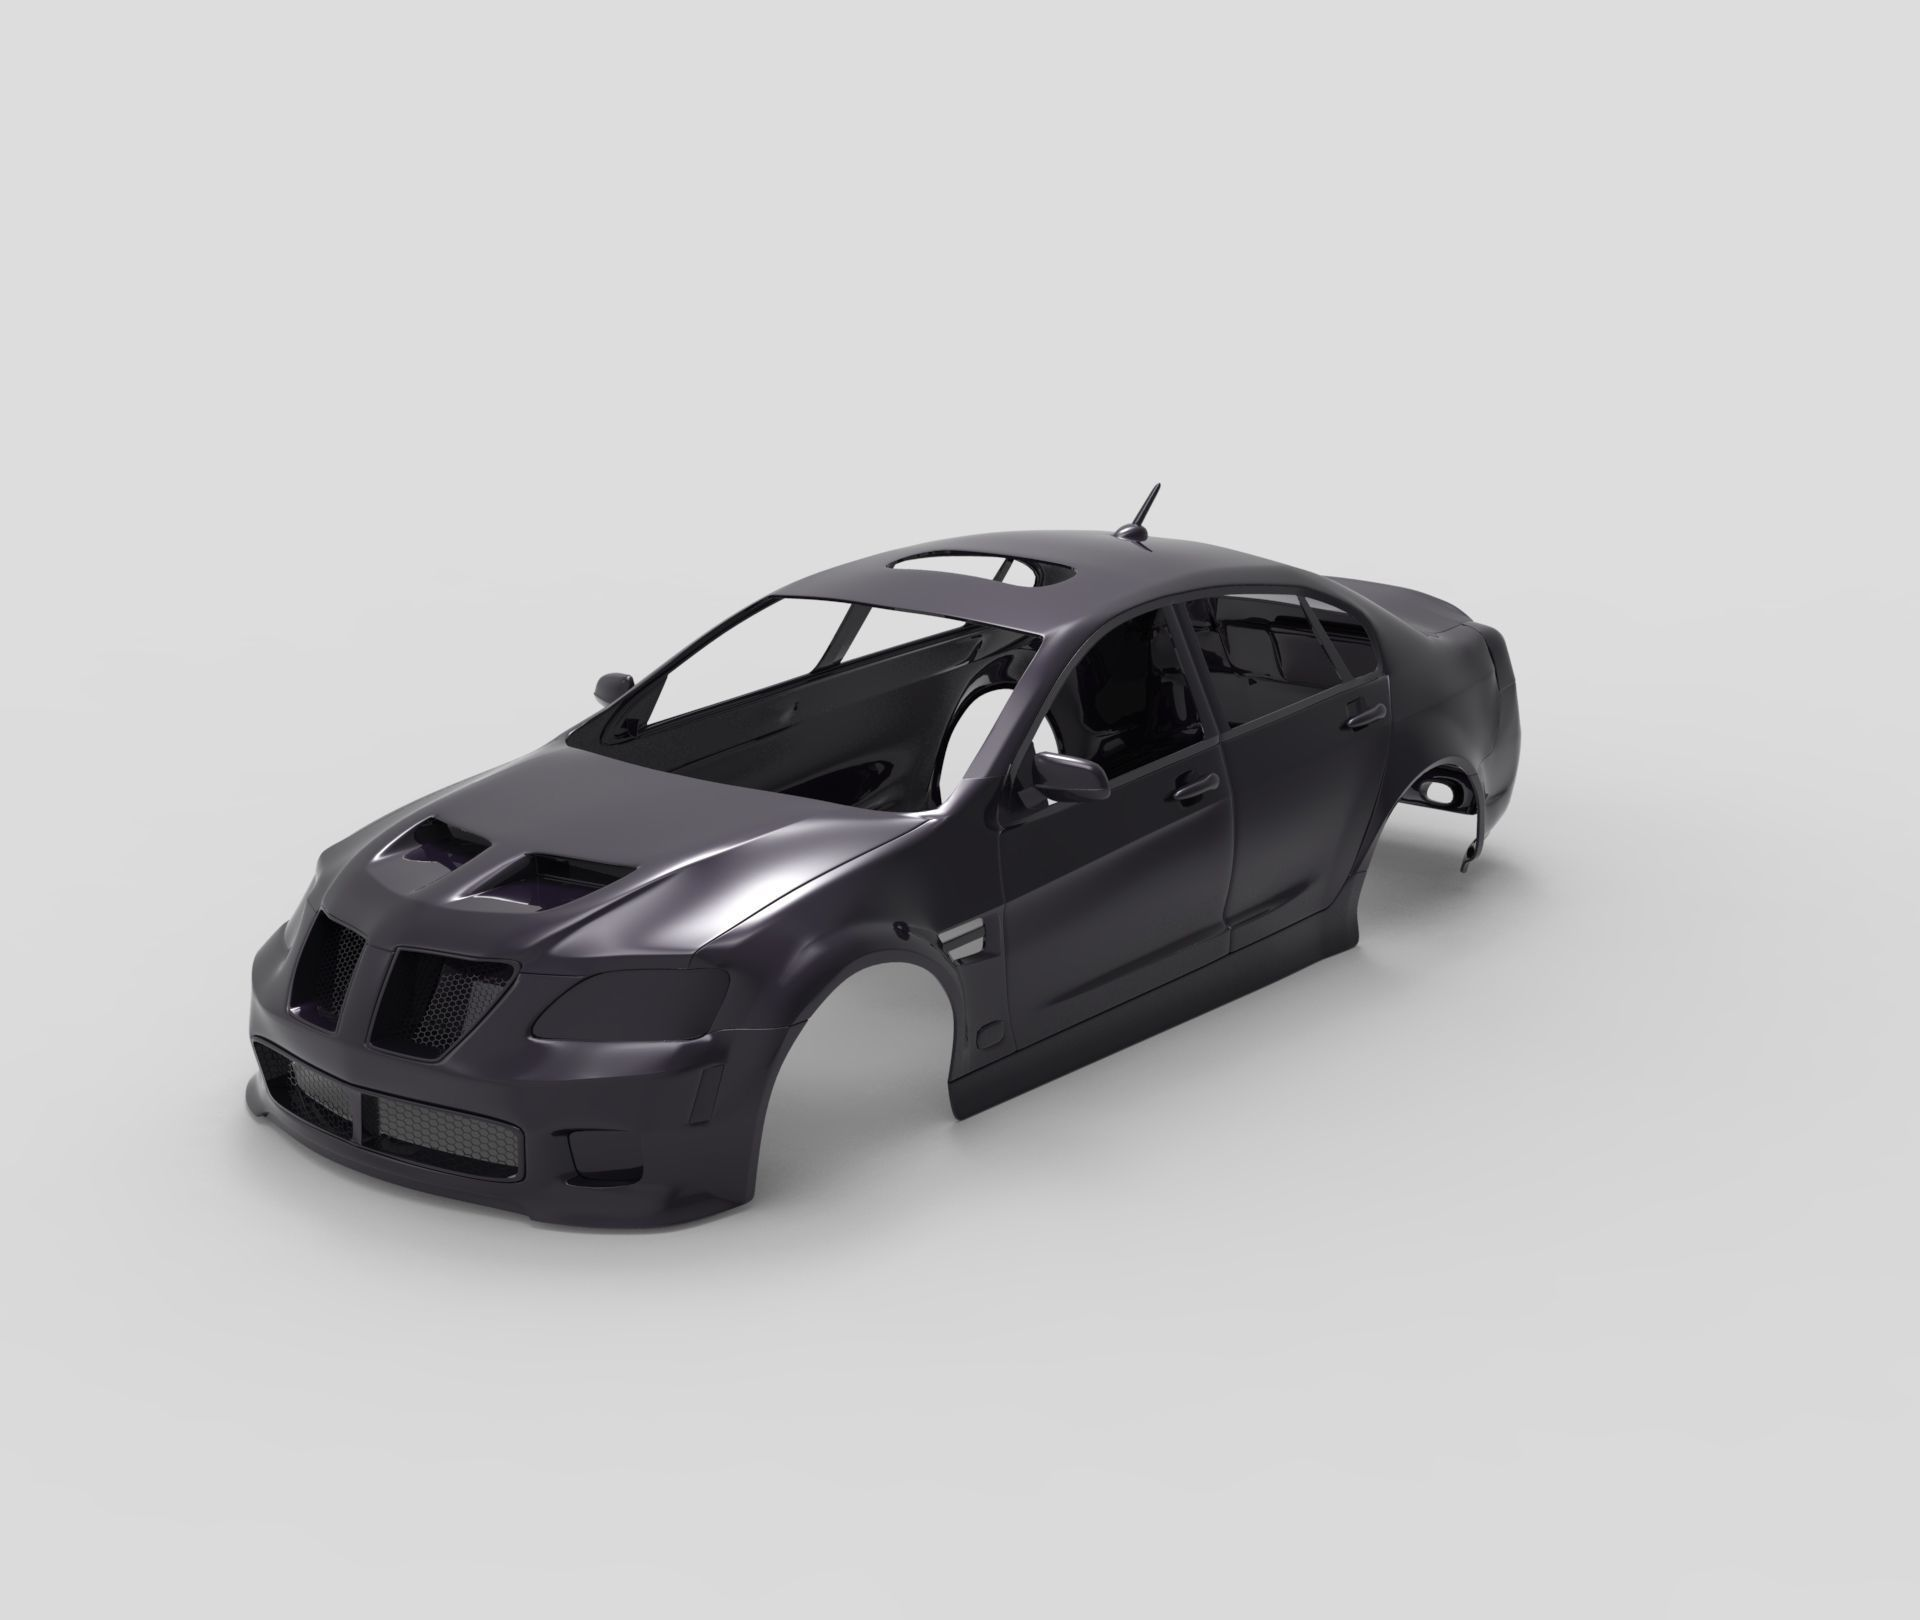 Pontiac G8 GXP 2009 RC body shell